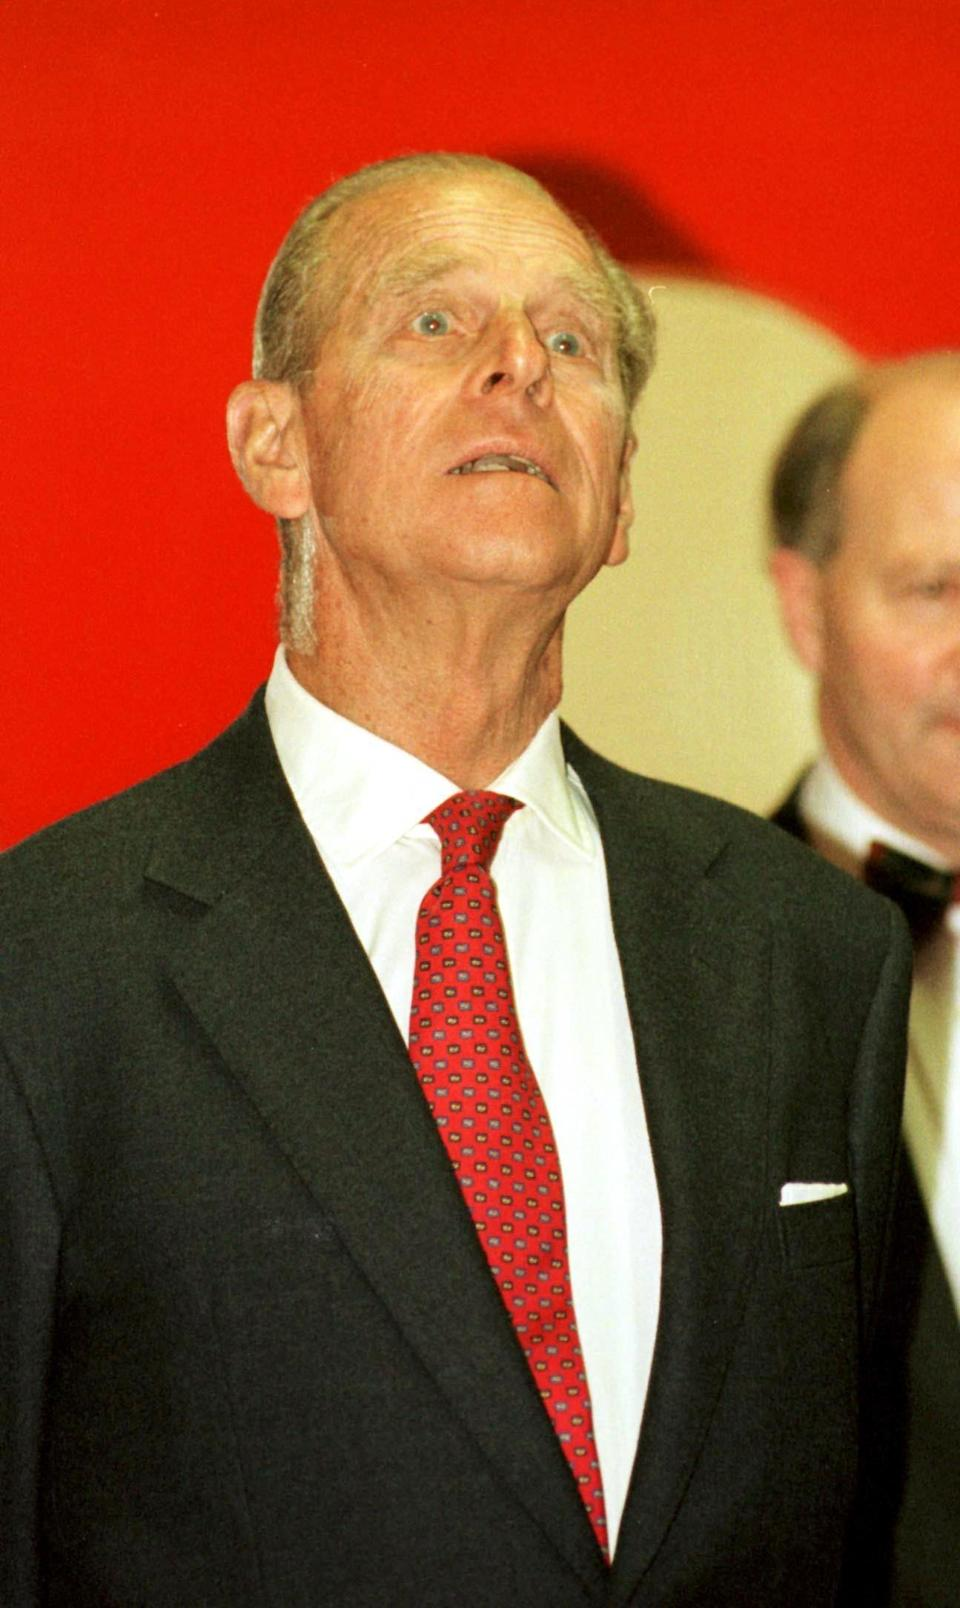 """<p>The Duke of Edinburgh steered clear to comment on his controversial remarks he made about Indians as he toured Caledonian Brewery famous for making India Pale Ale. Earlier, during a visit to an electronics factory in Scotland, Prince Philip saw a messy fuse box and said it looked """"as though it was put in by an Indian"""". (Photo credit: <span>PA/PA Archive/PA Images)</span> </p>"""